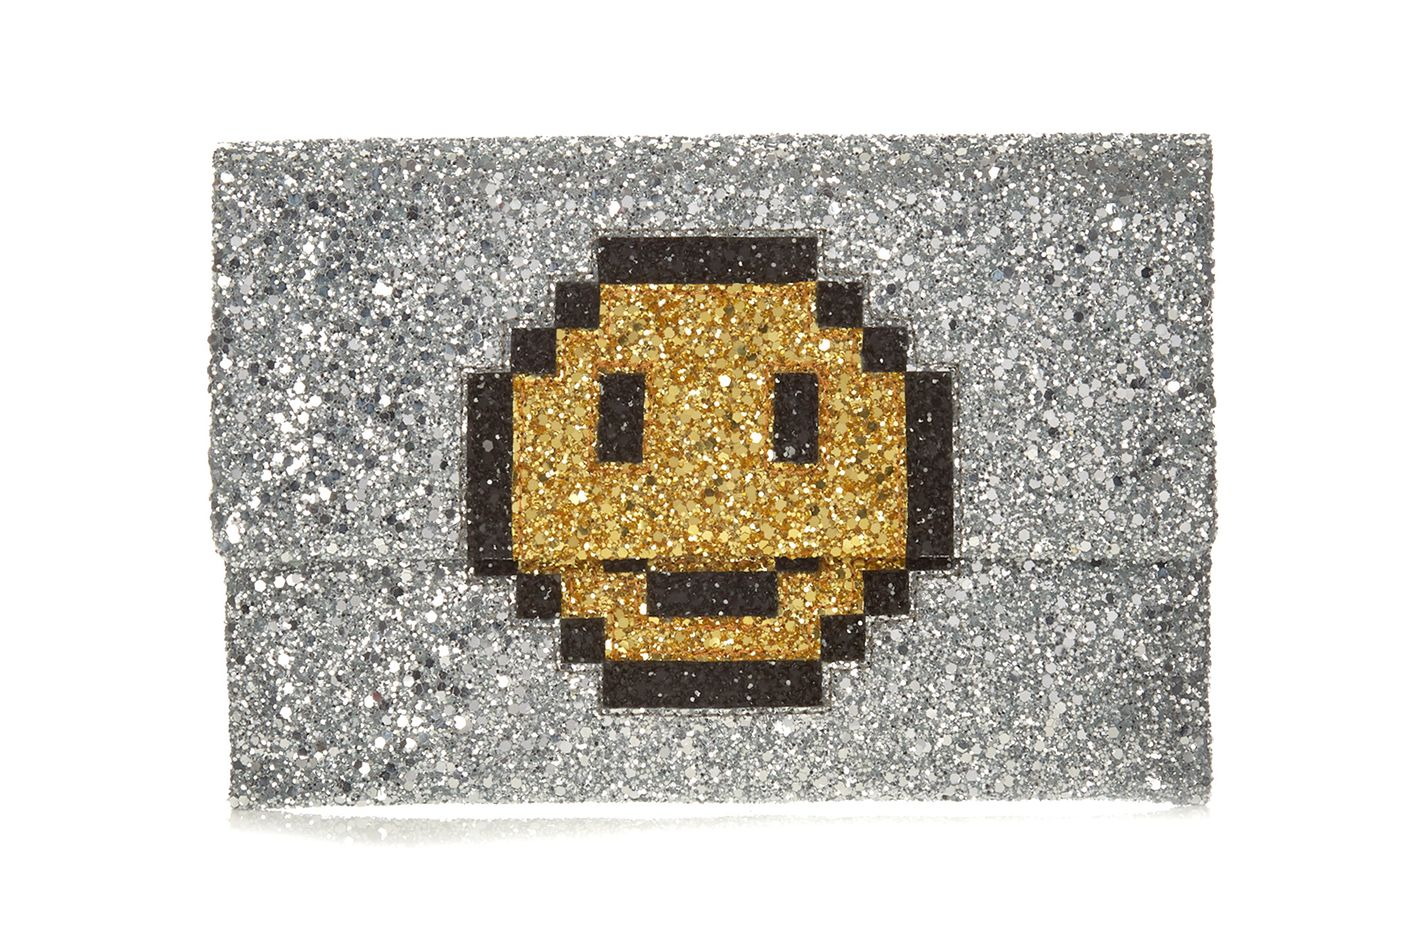 Anya Hindmarch Pixel Smiley Clutch